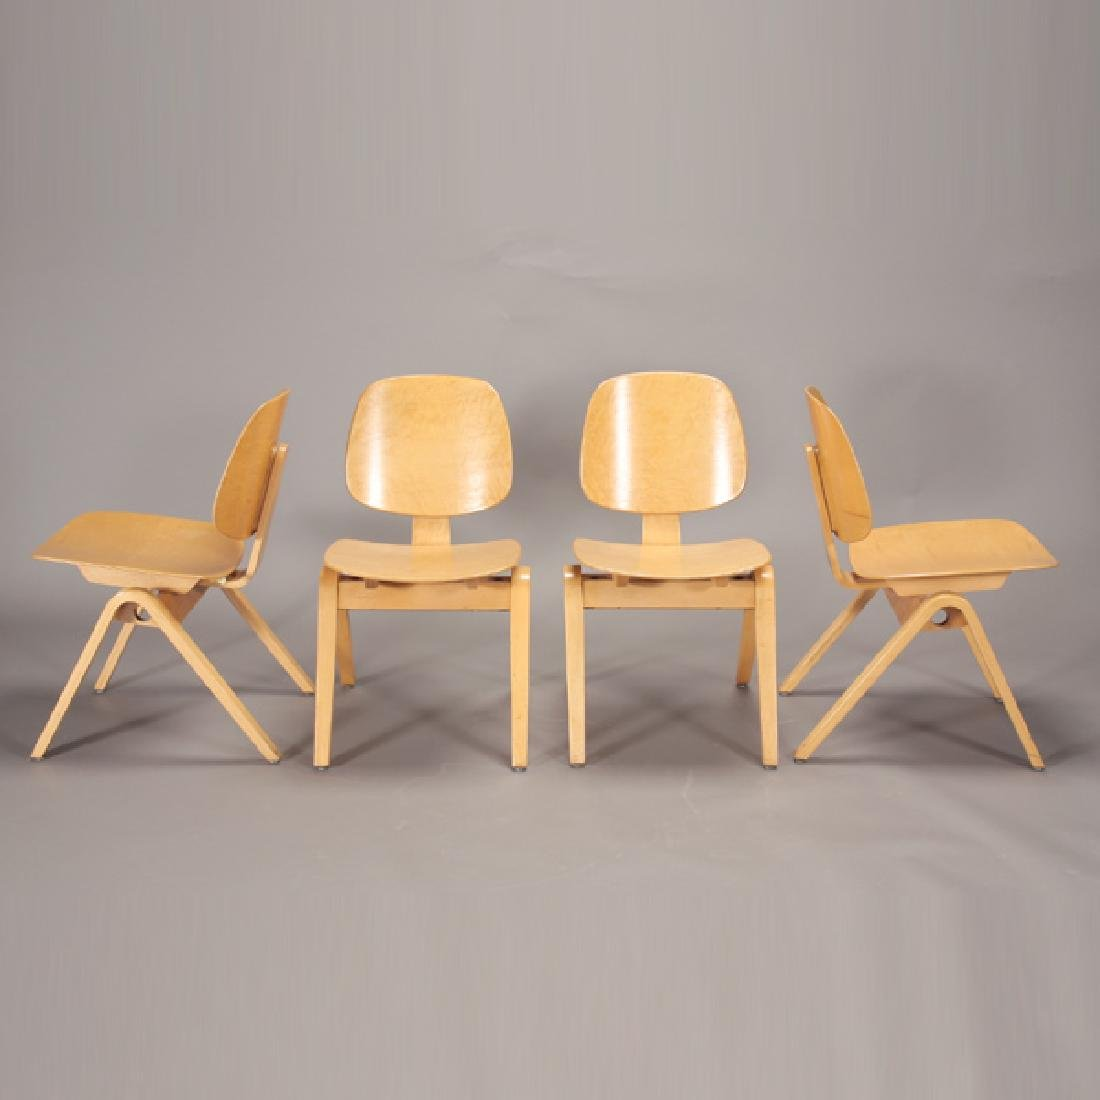 Four Joe Atkinson Chairs Made for Thonet.